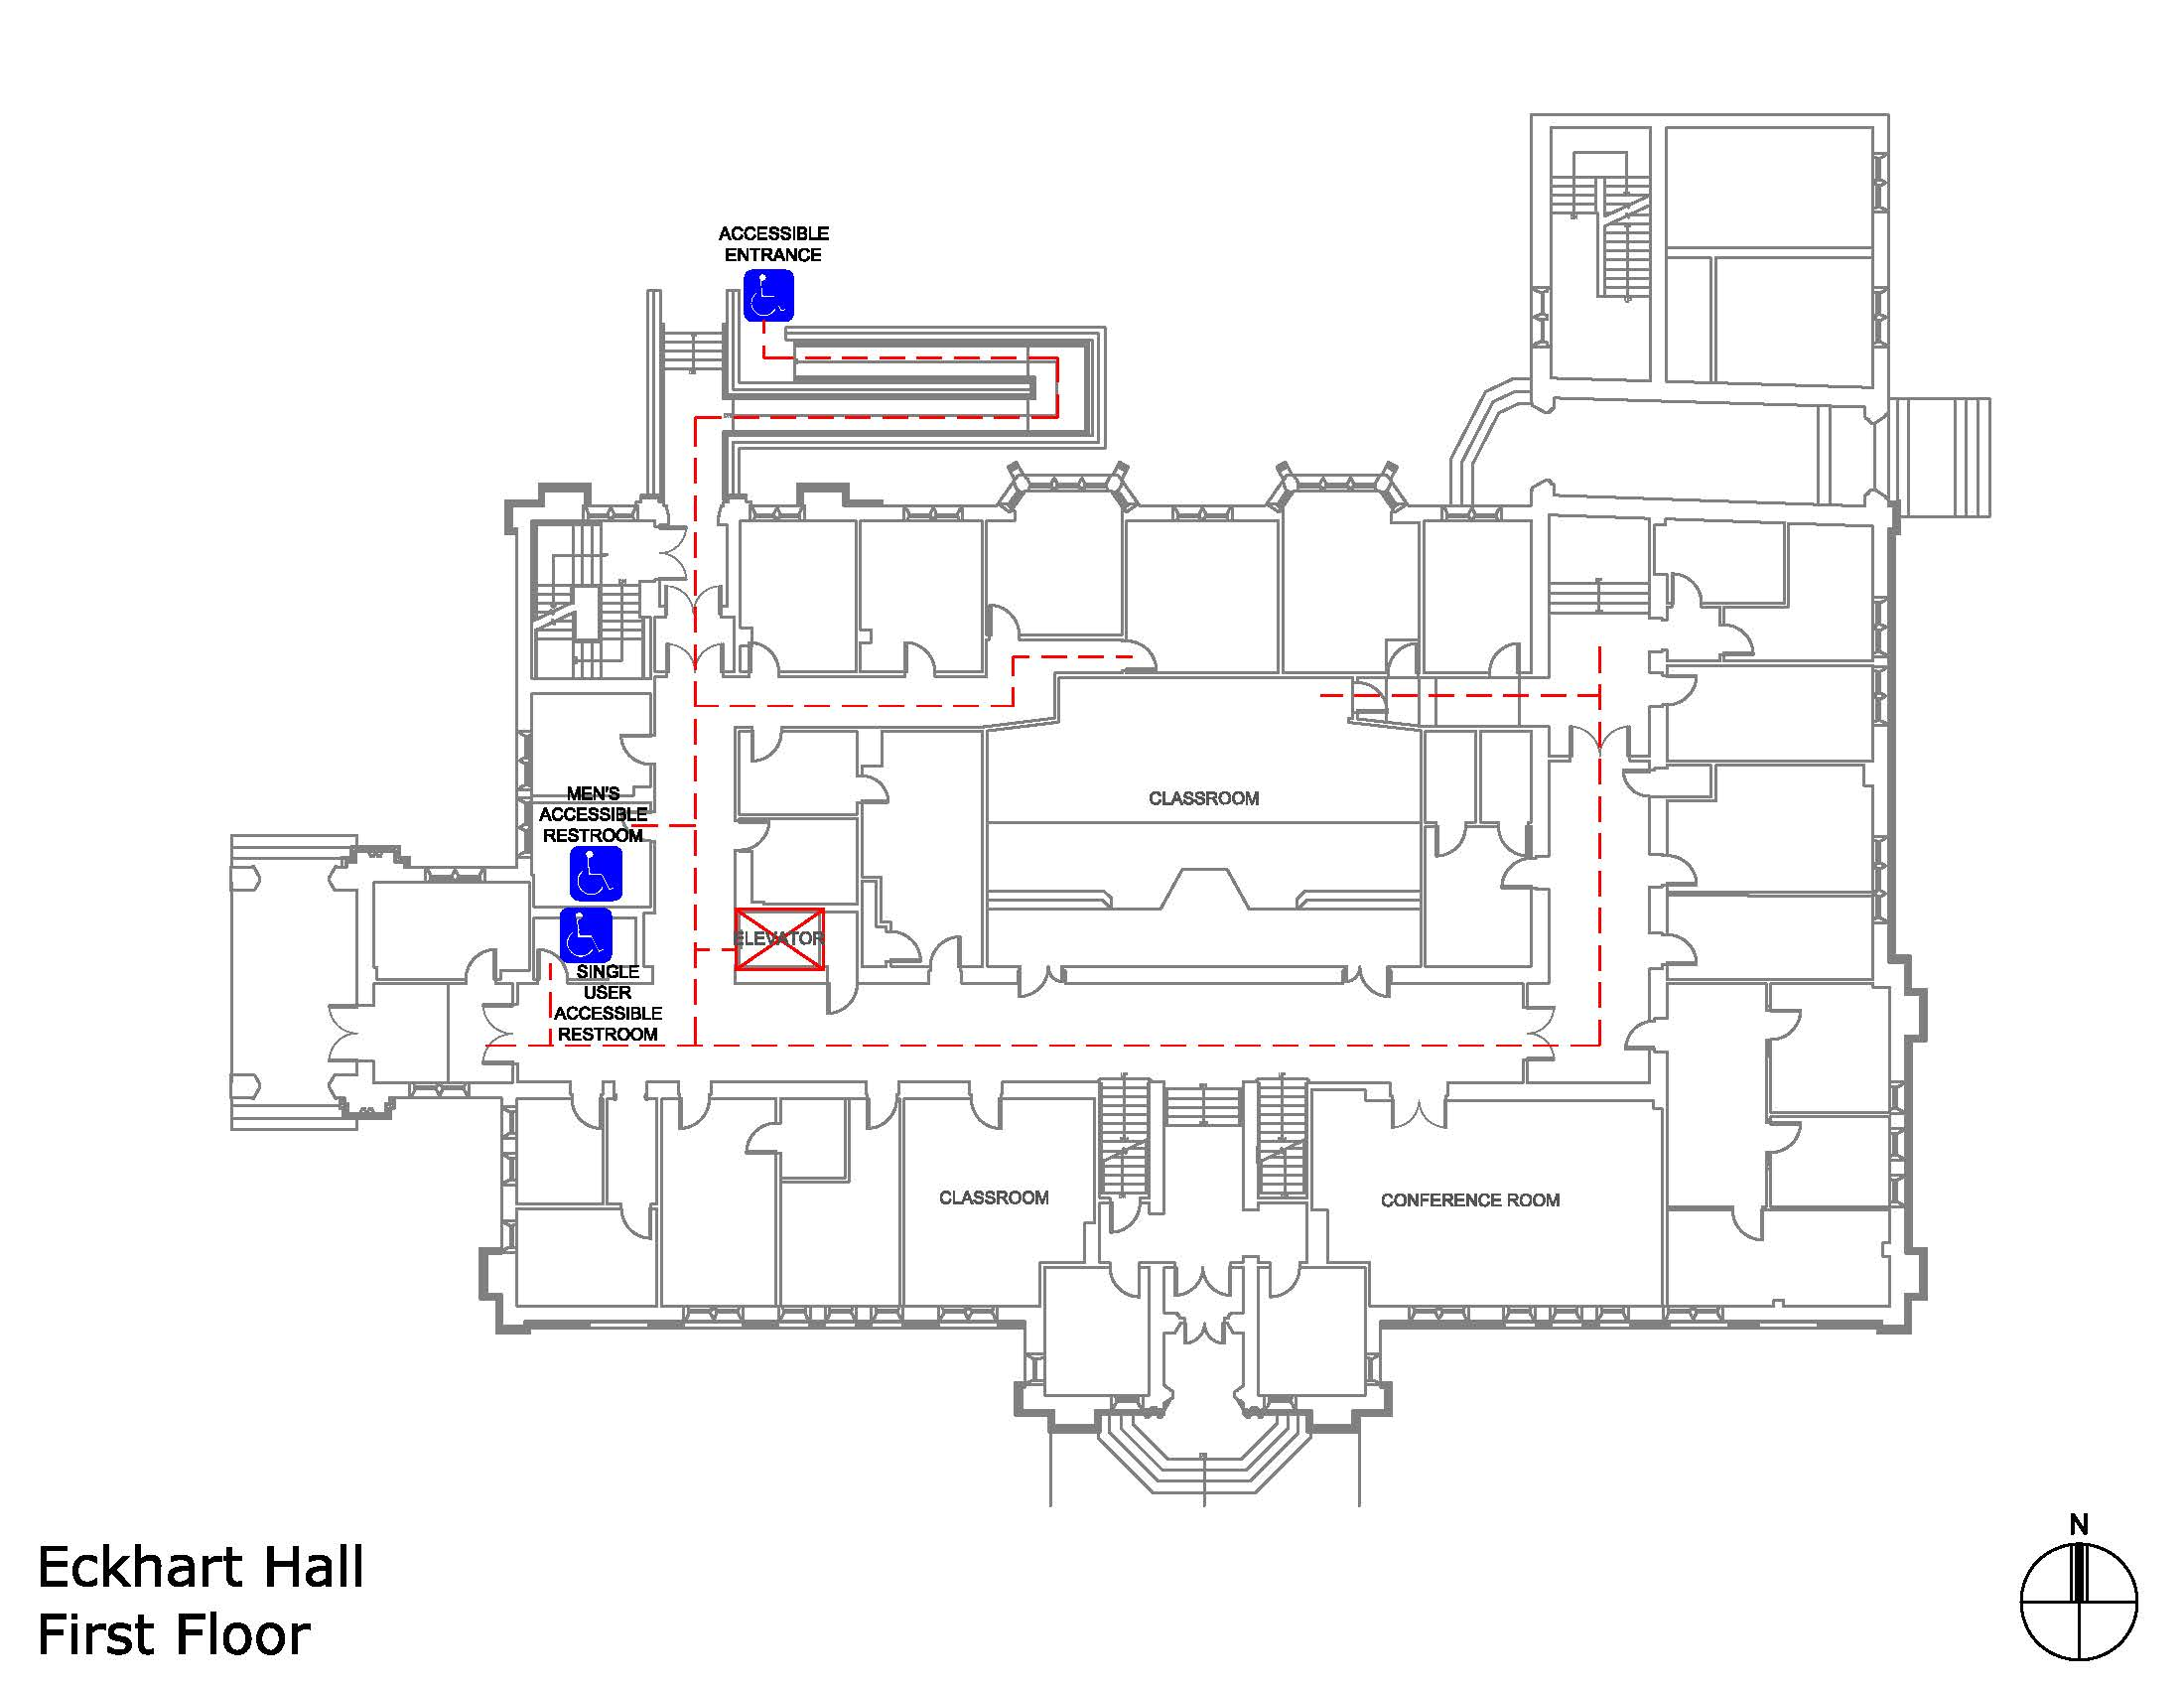 Eckhart Hall first floor accessible areas